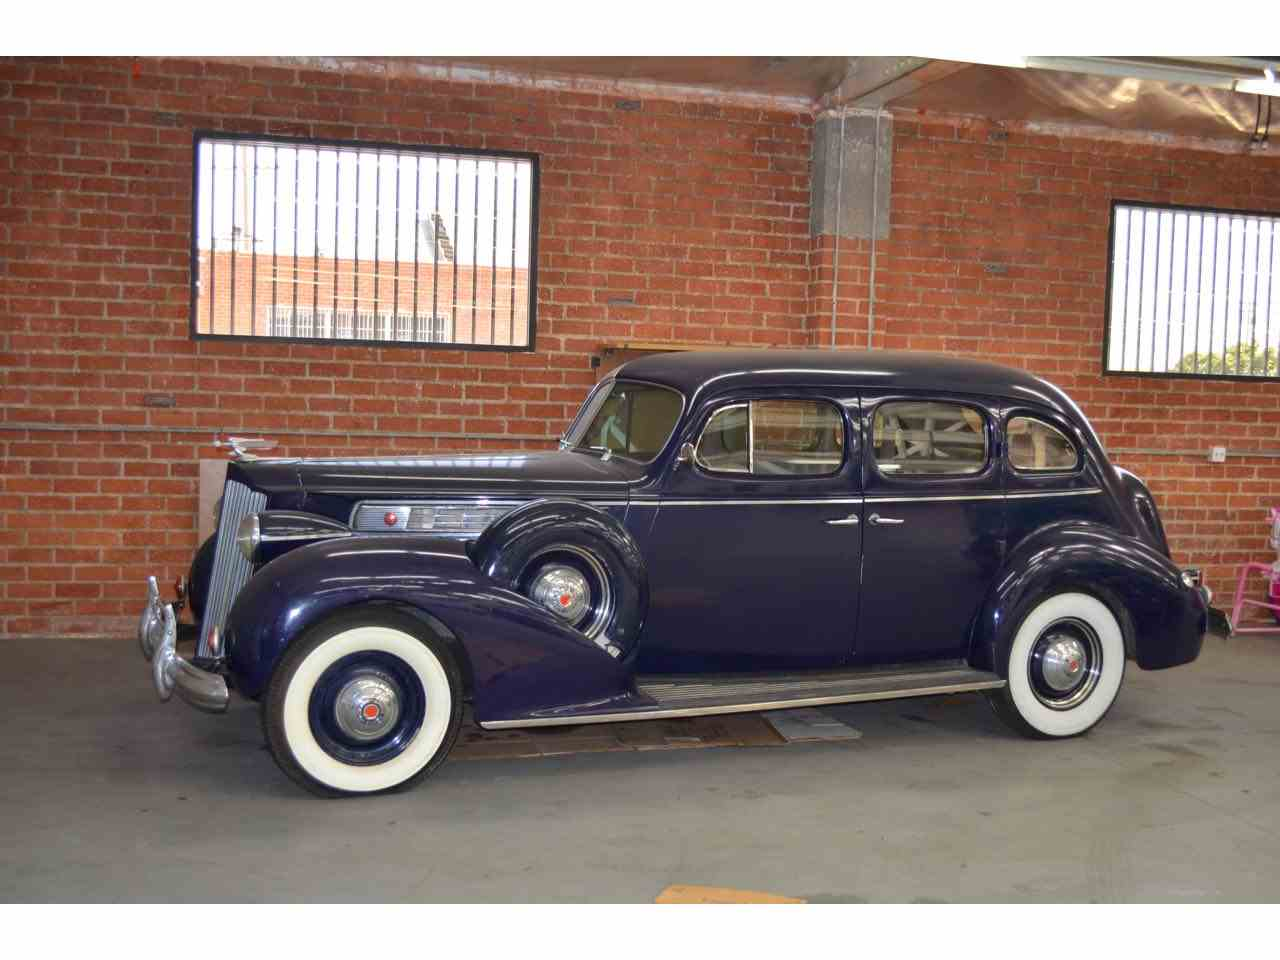 1939 Packard 1703 Super 8 Four Door Touring Sedan for Sale ...